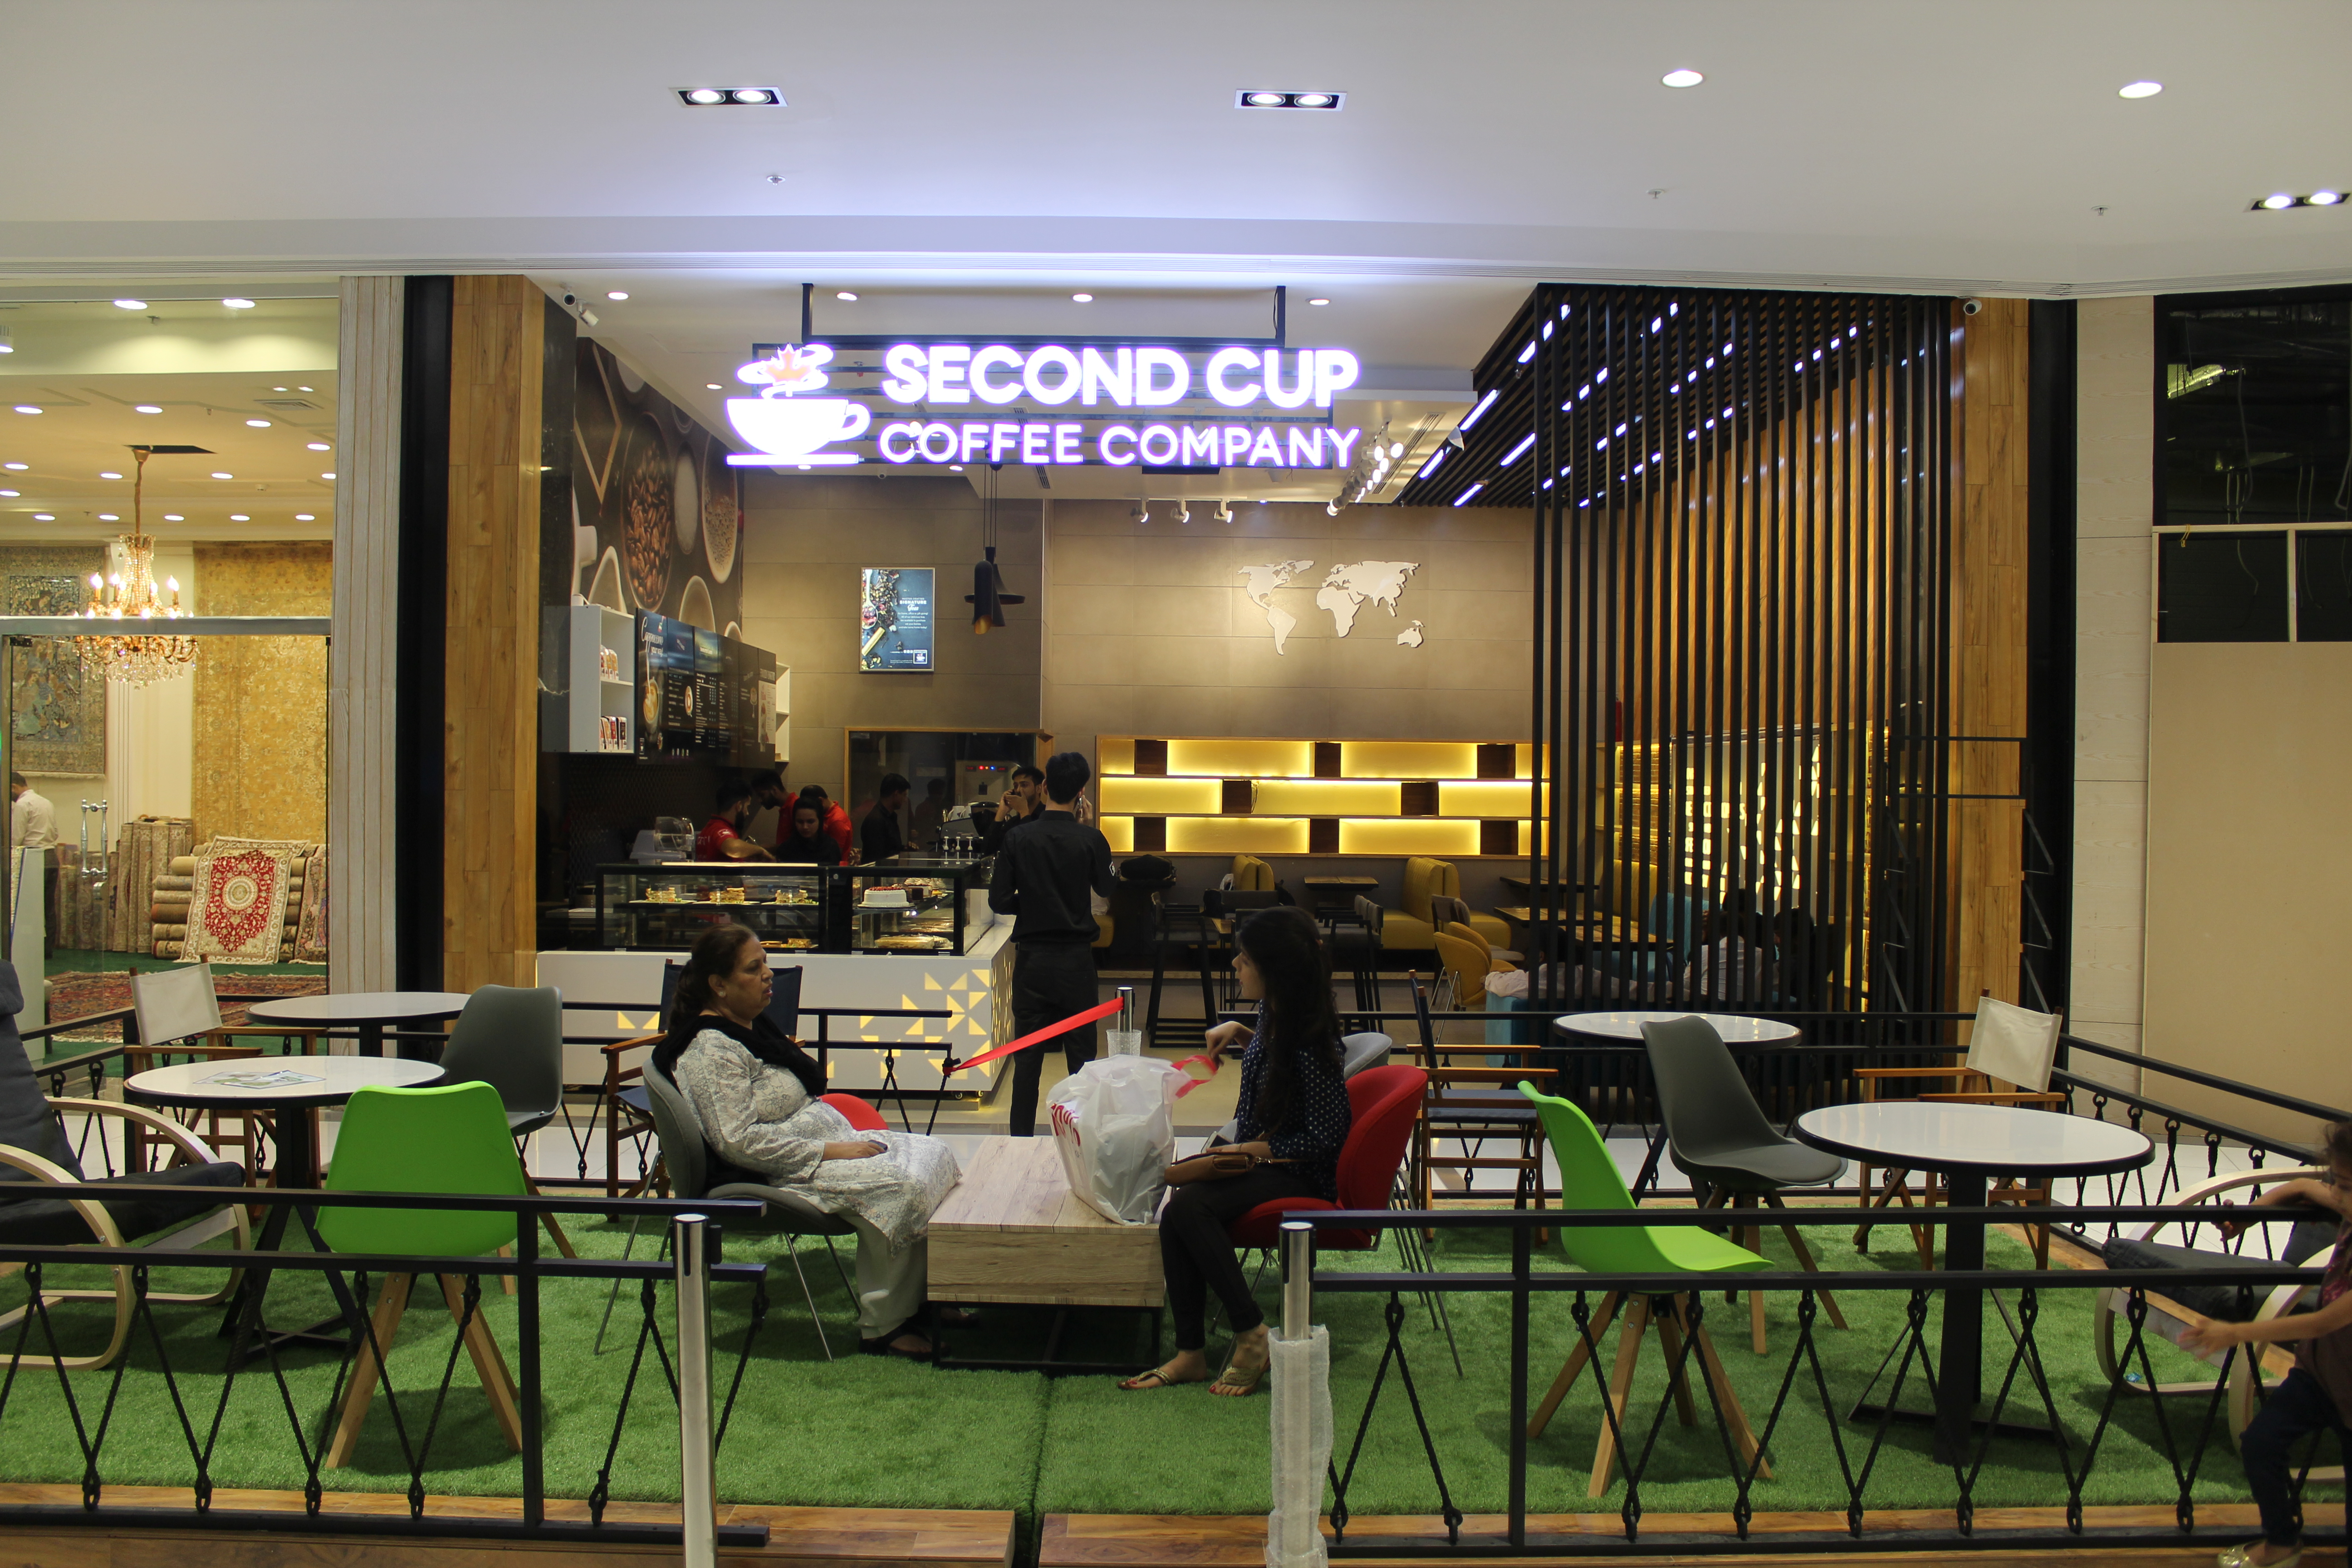 Second-Cup-Franchise-Coffee-Cost-in-Pakistan